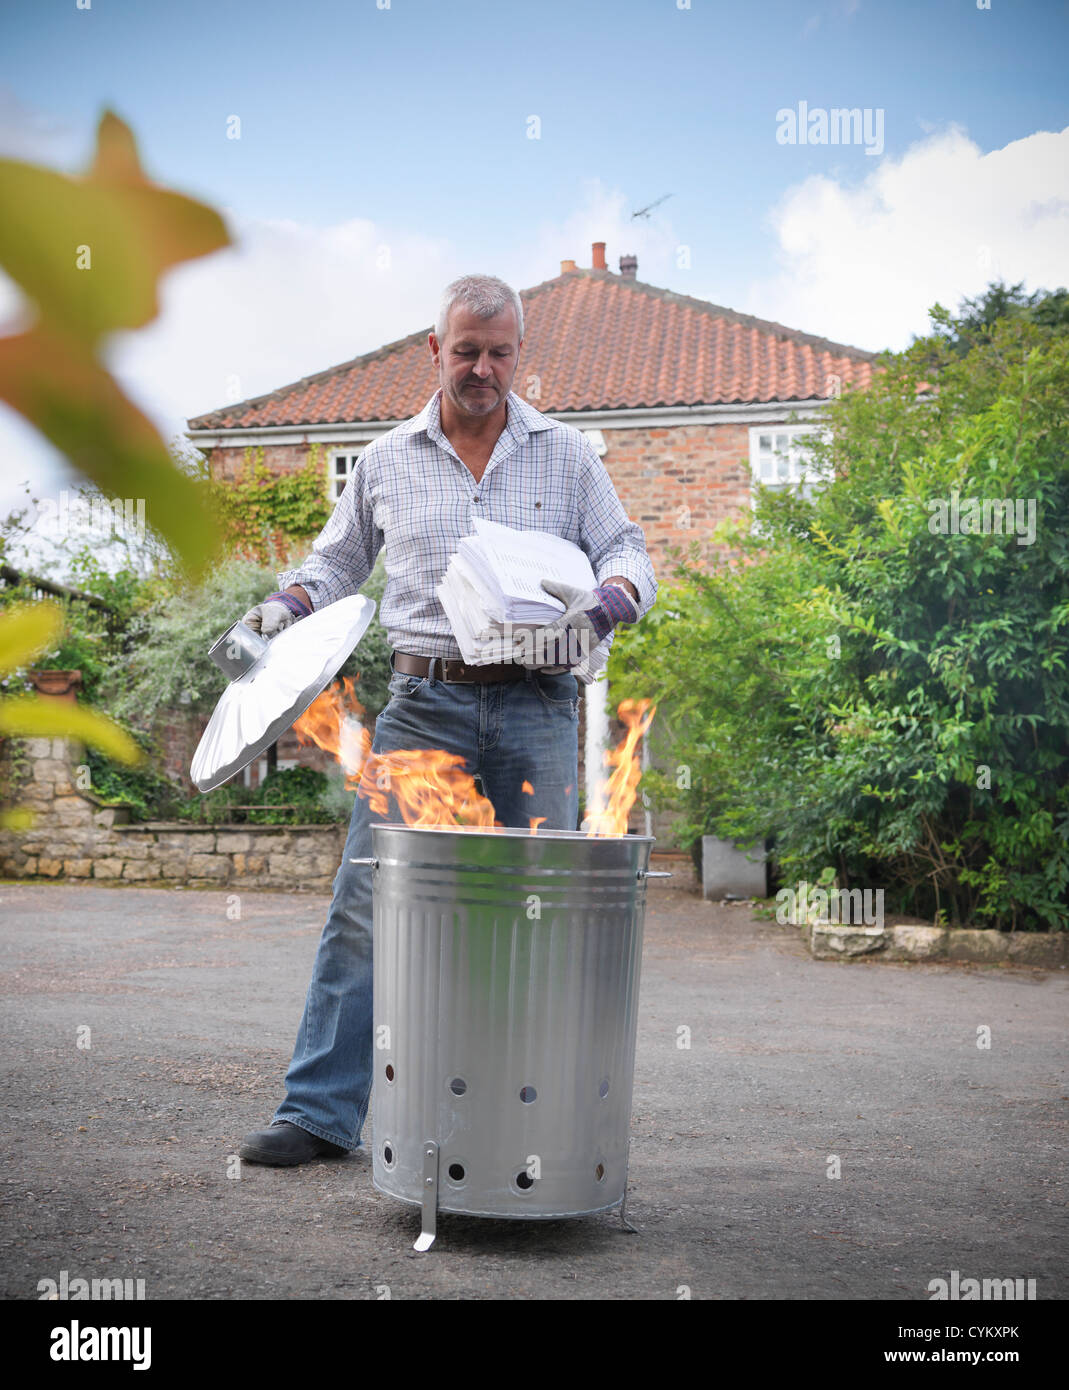 Man burning papers in garbage can - Stock Image